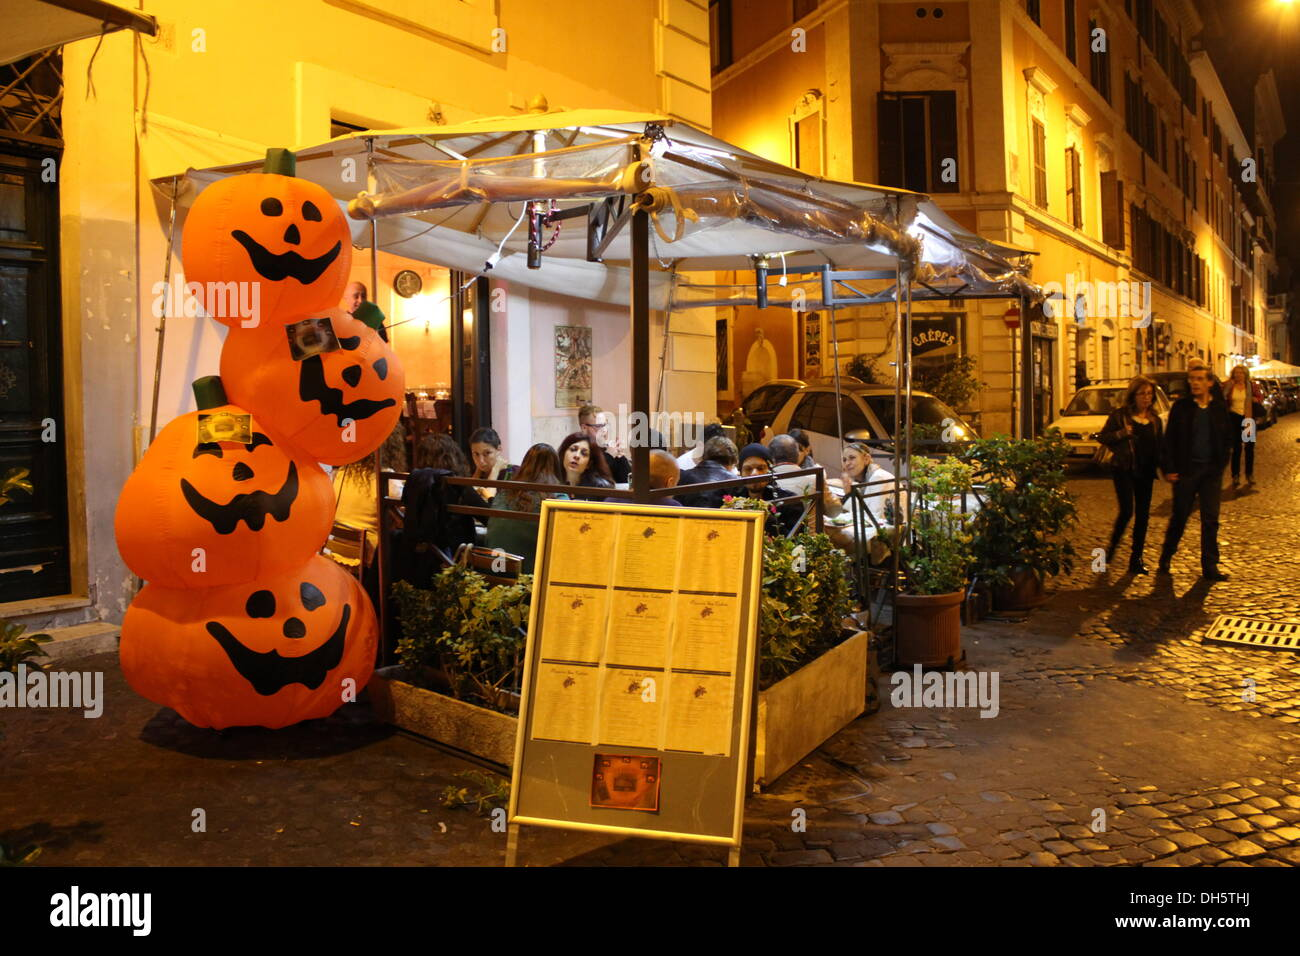 rome italy 31st oct 2013halloween night on the streets of trastevere